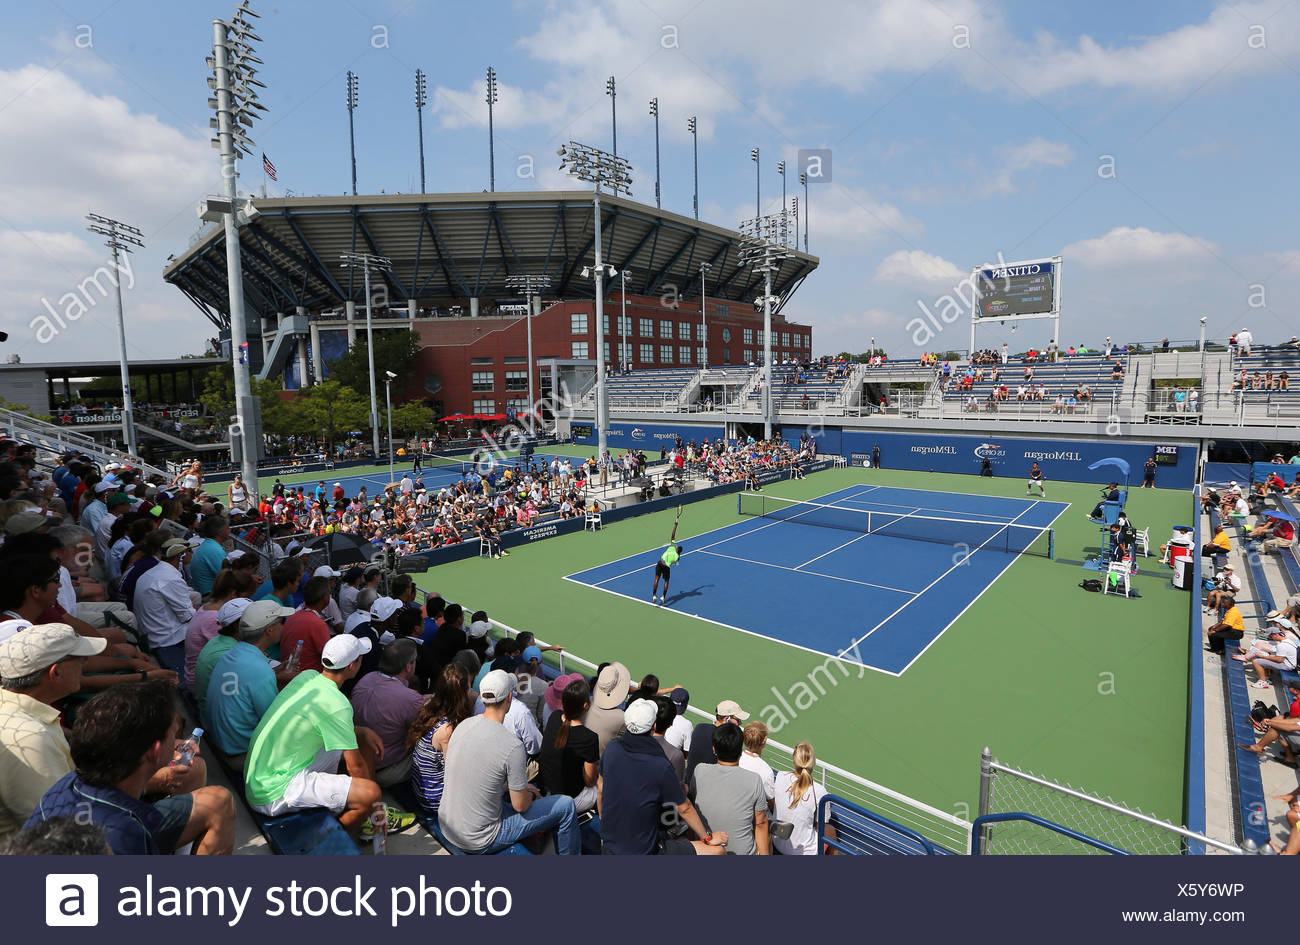 Outdoor courts and the Arthur Ashe Stadium, US Open in 2014, ITF Grand Slam Tennis Tournament, USTA Billie Jean King National - Stock Image